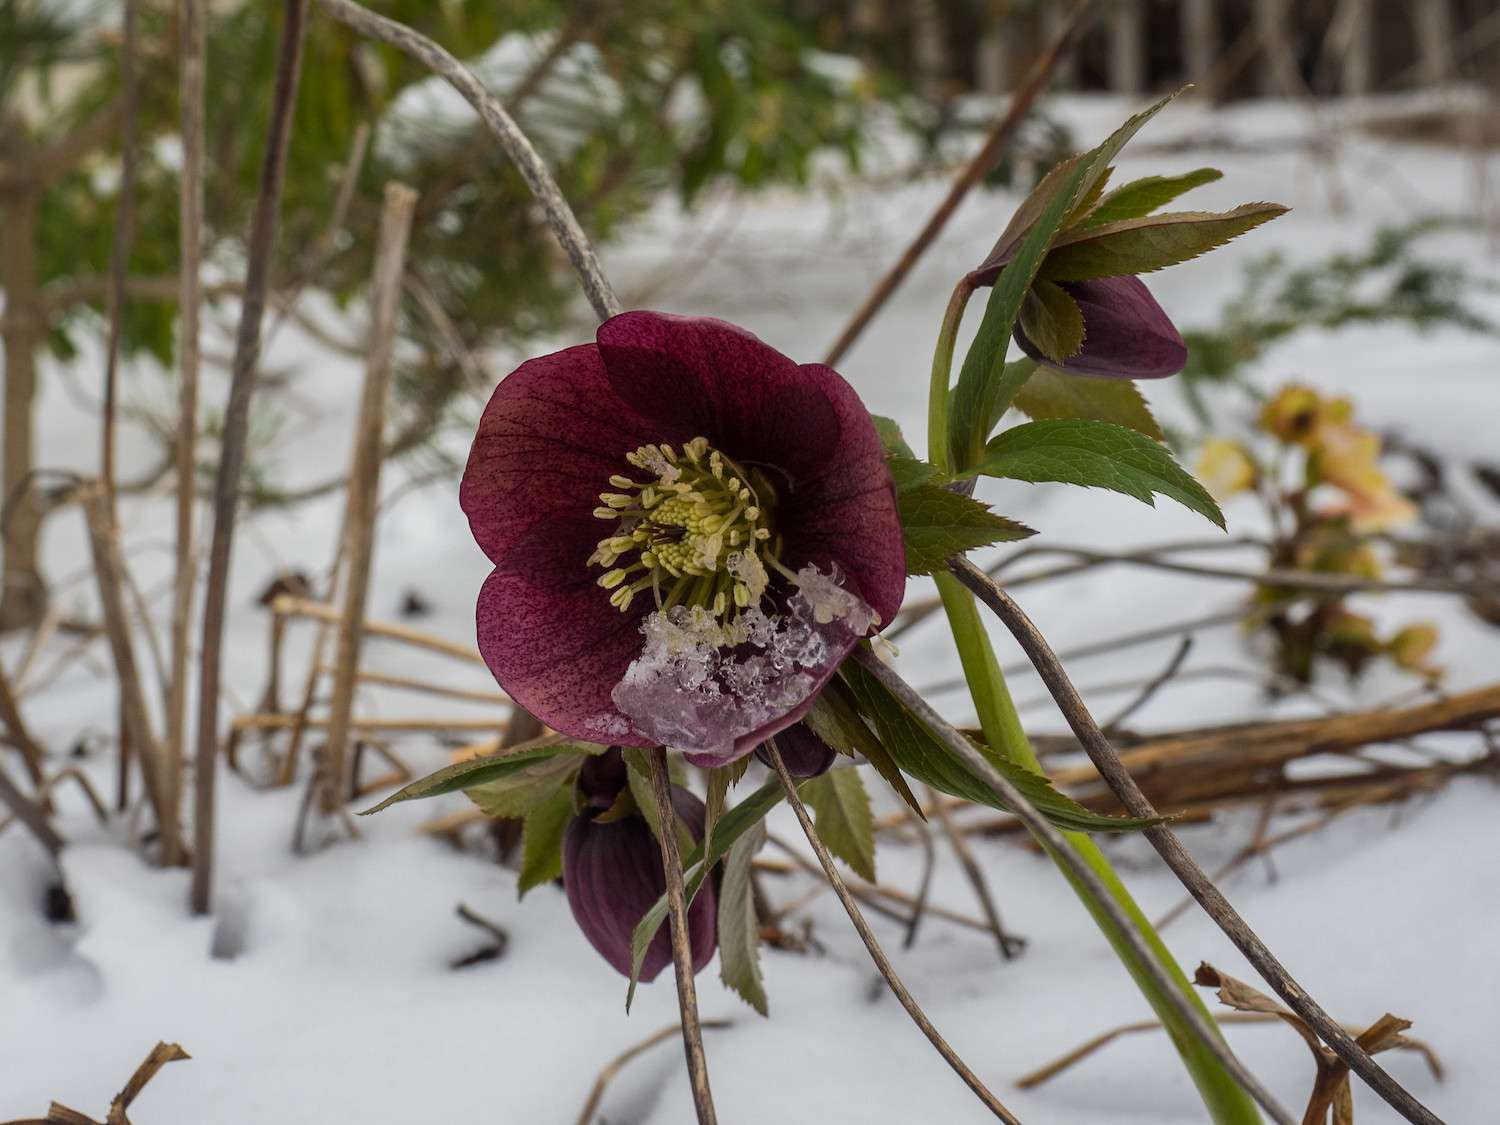 A round maroon flower with a yellow center blossoms in the snow